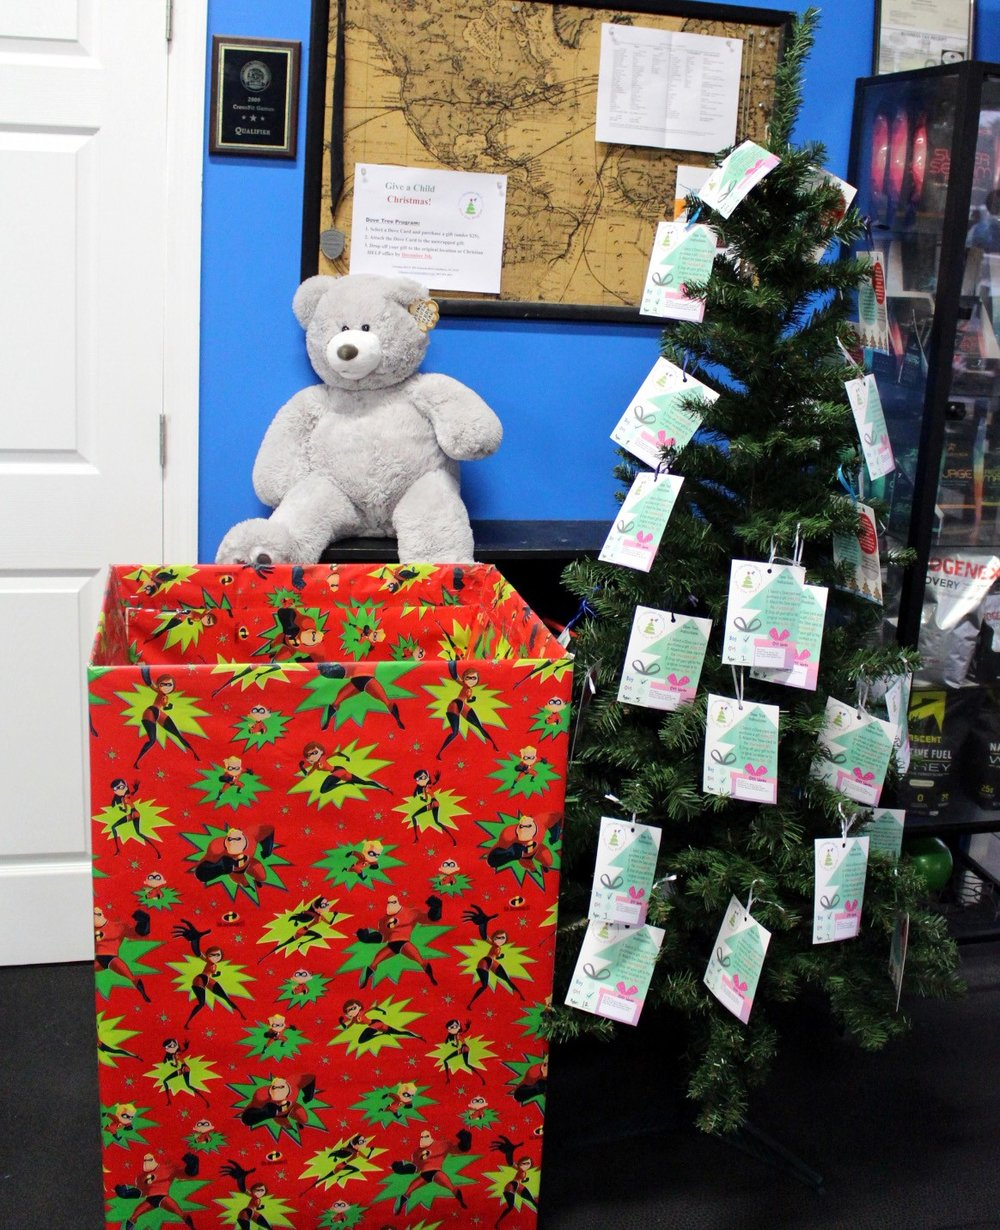 There's still time to donate toys to the Christian Care Dove Tree program (it says til Dec 5th, but Fedex will actually be picking it up on Dec 7th or 8th). First box is full already so they had to bring us another one - thank you all who donated!